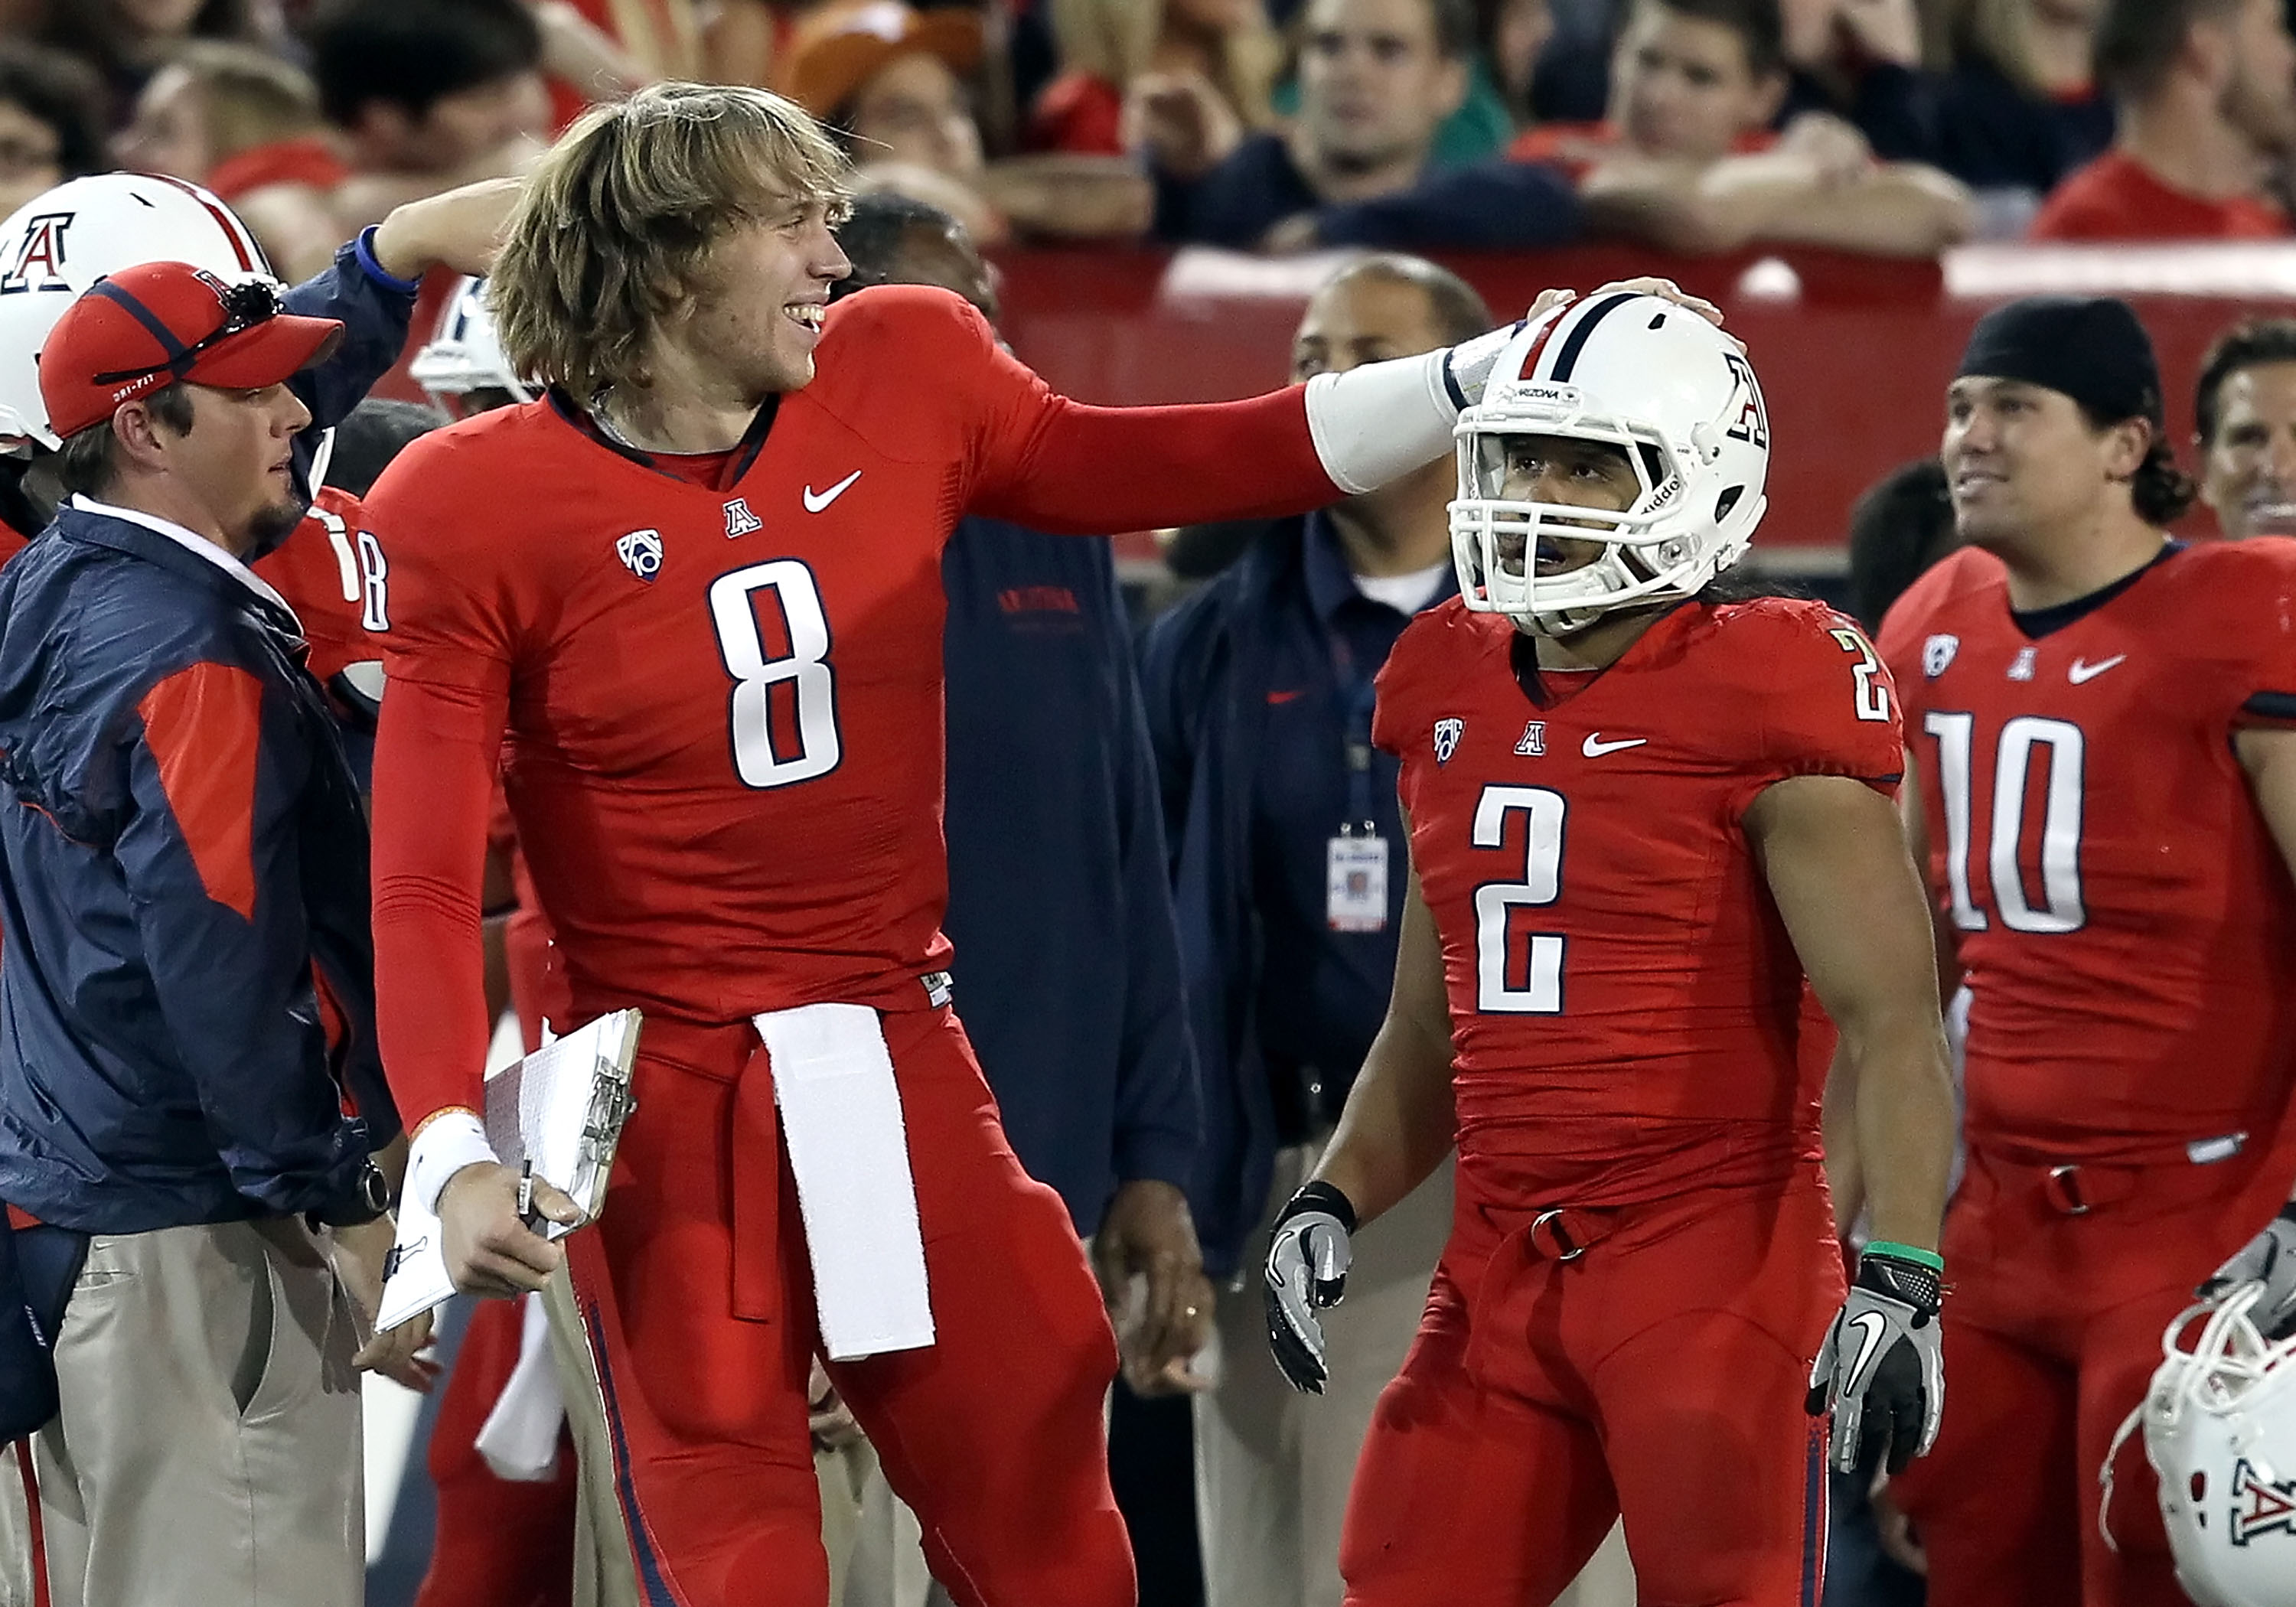 TUCSON, AZ - OCTOBER 23:  Injured quarterback Nick Foles #8 of the Arizona Wildcats congratulates Keola Antolin #2 after Antolin scored a 78 yard rushing touchdown against the Washington Huskies during the second quarter of the college football game at Ar